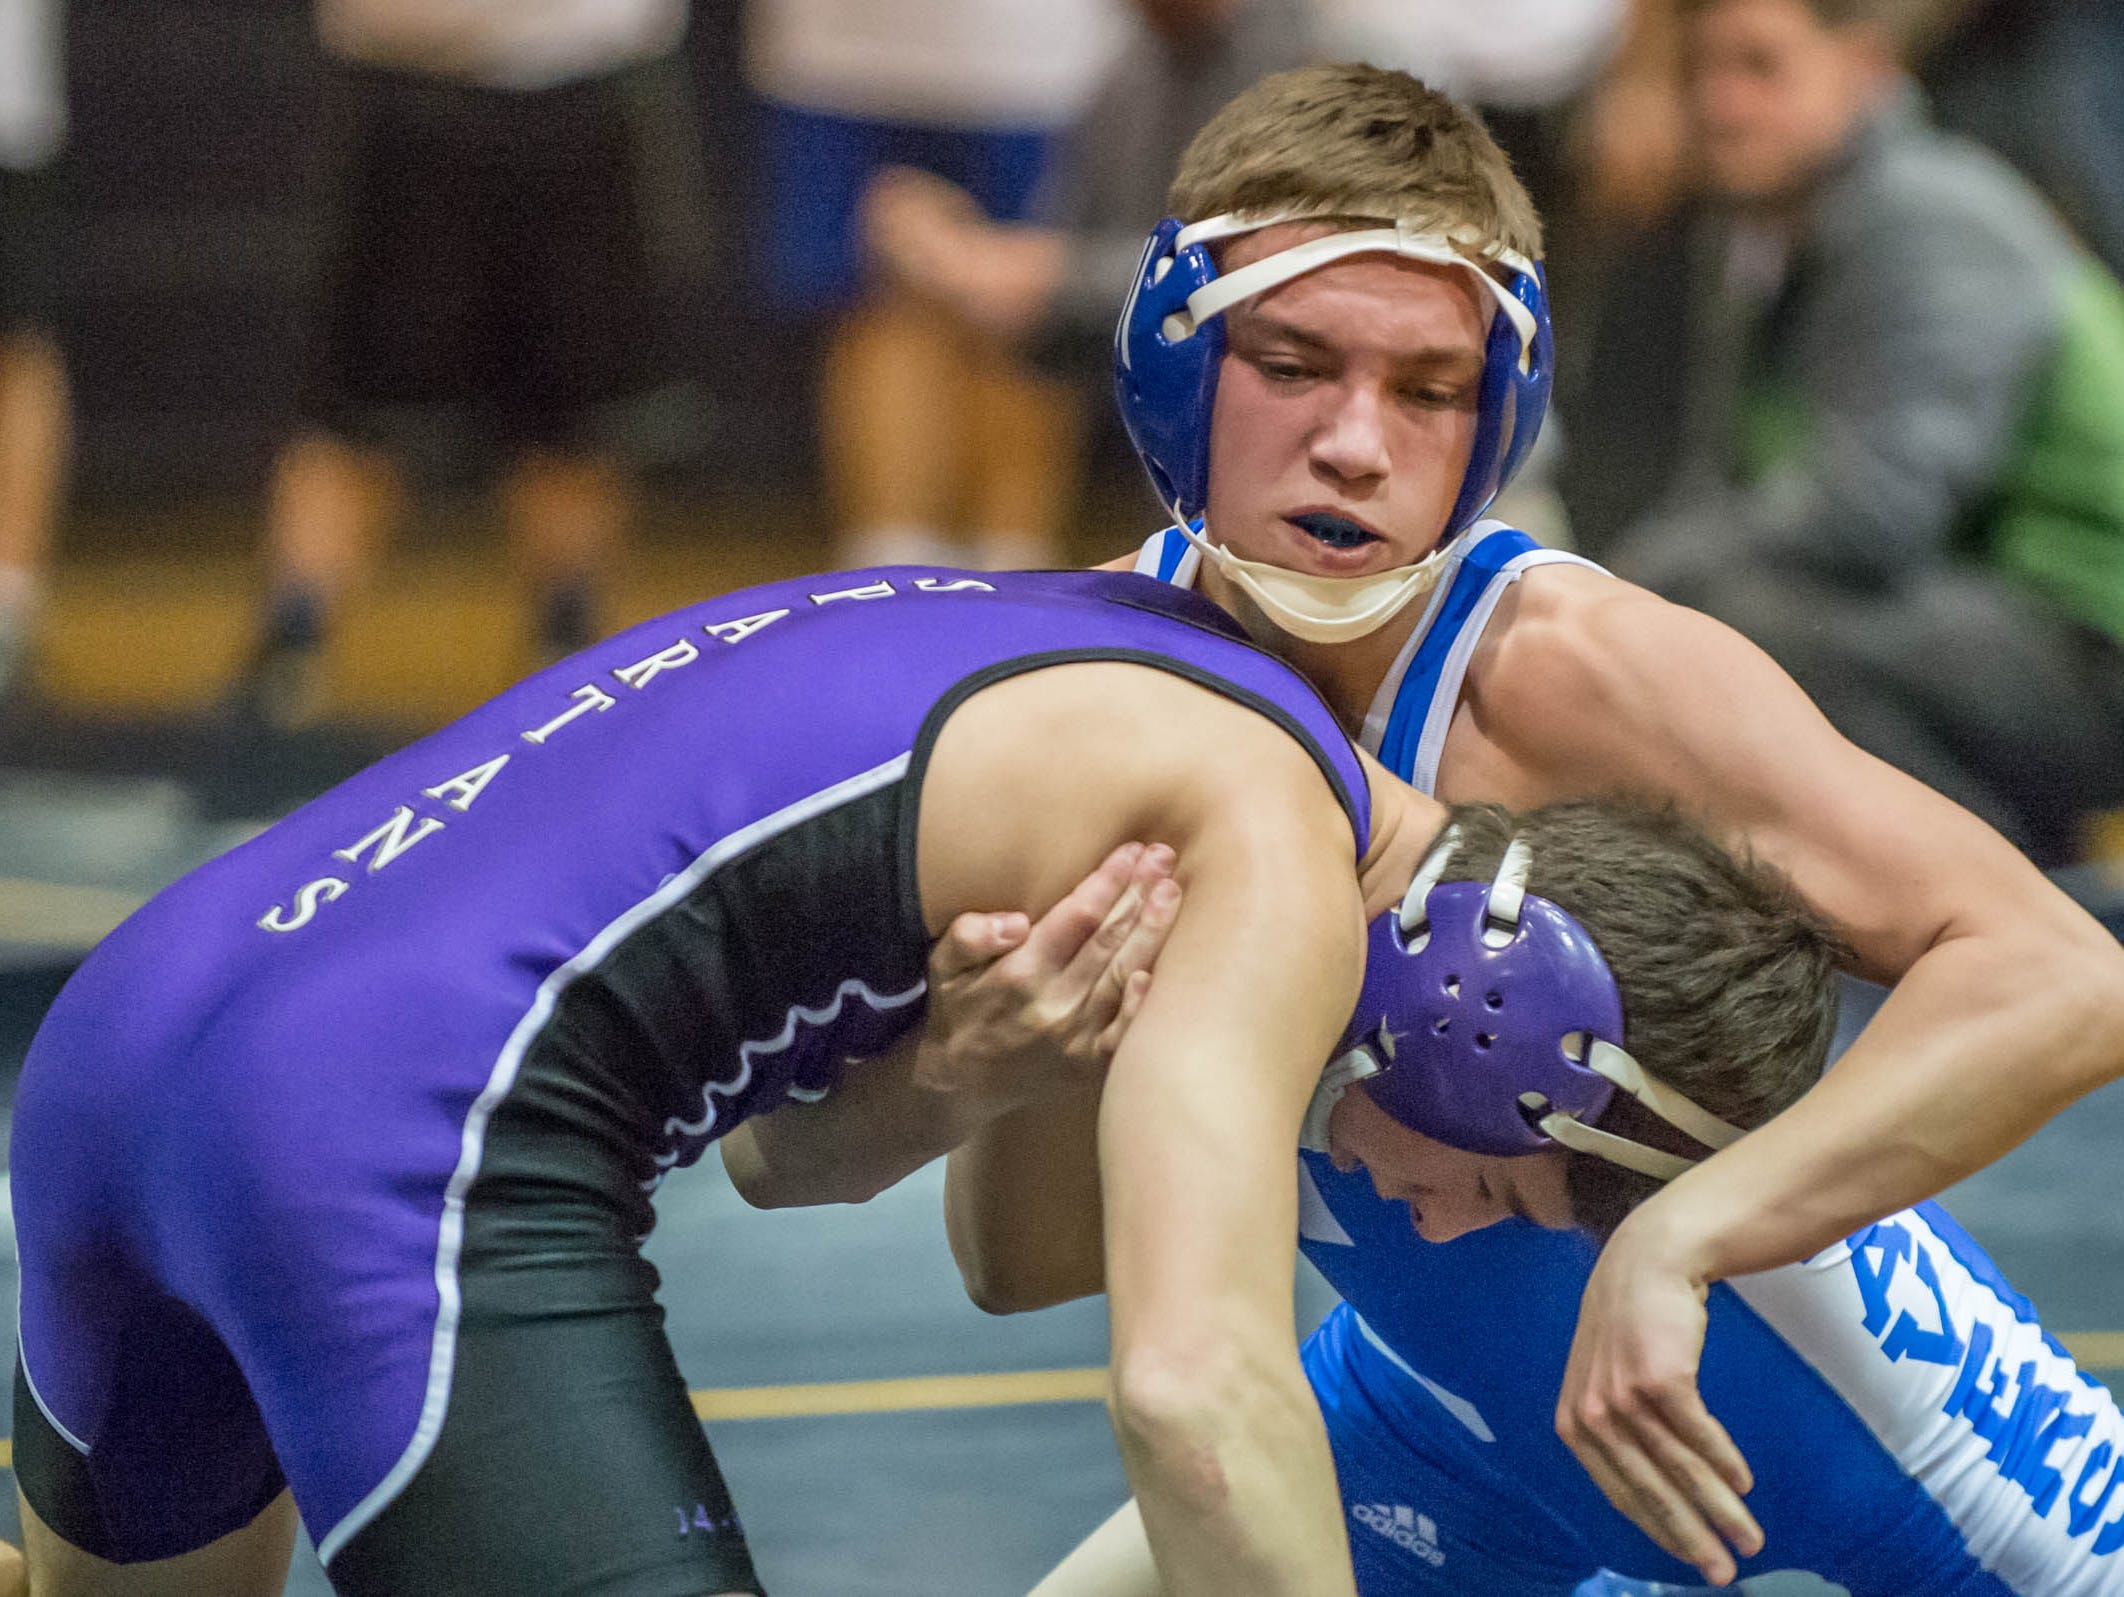 Harper Creek's Hunter Mainstone wrestles Lakeview's Brendan Stevens in the 125 pound weight class in a quad meet held at the Battle Creek Central's Fieldhouse Wednesday evening.